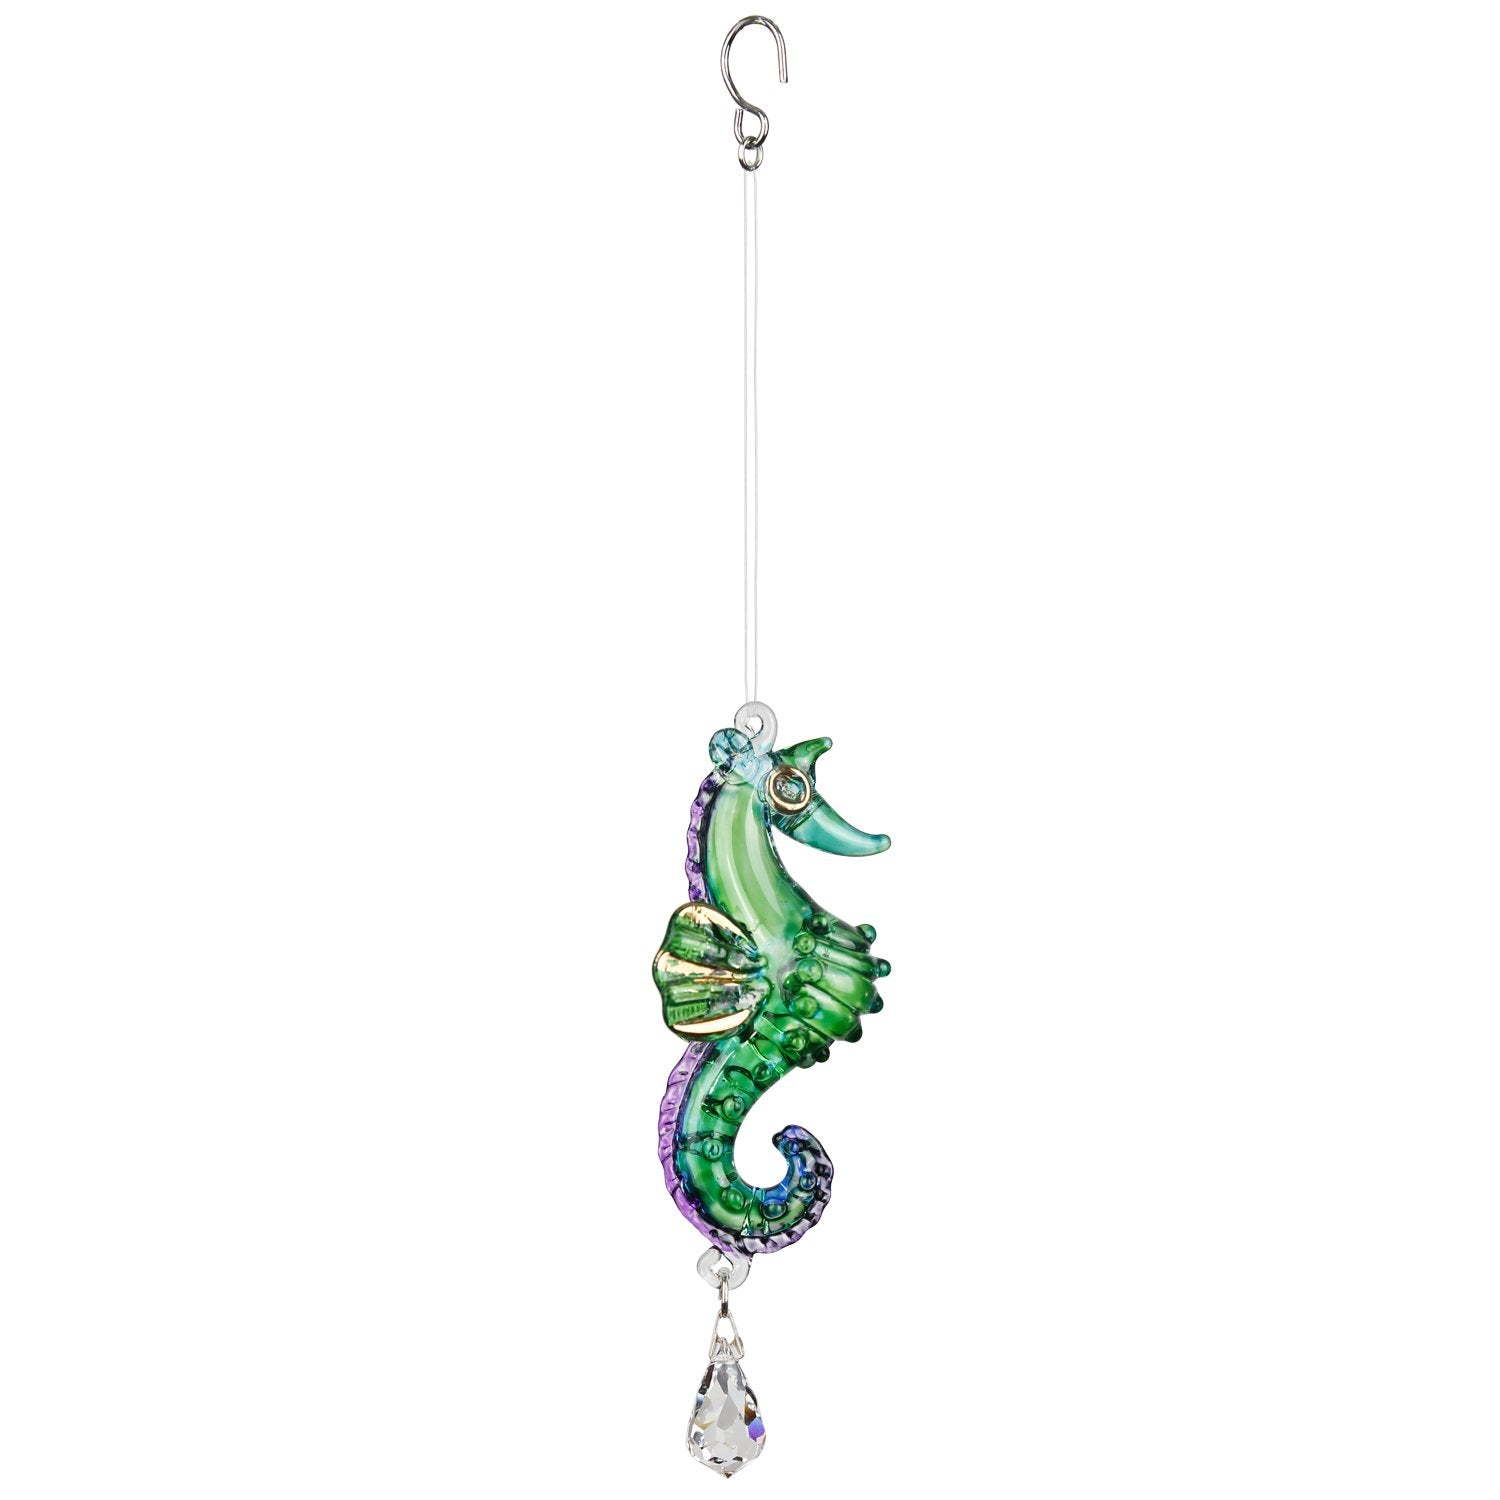 Fantasy Glass Suncatcher - Seahorse, Peacock full product image